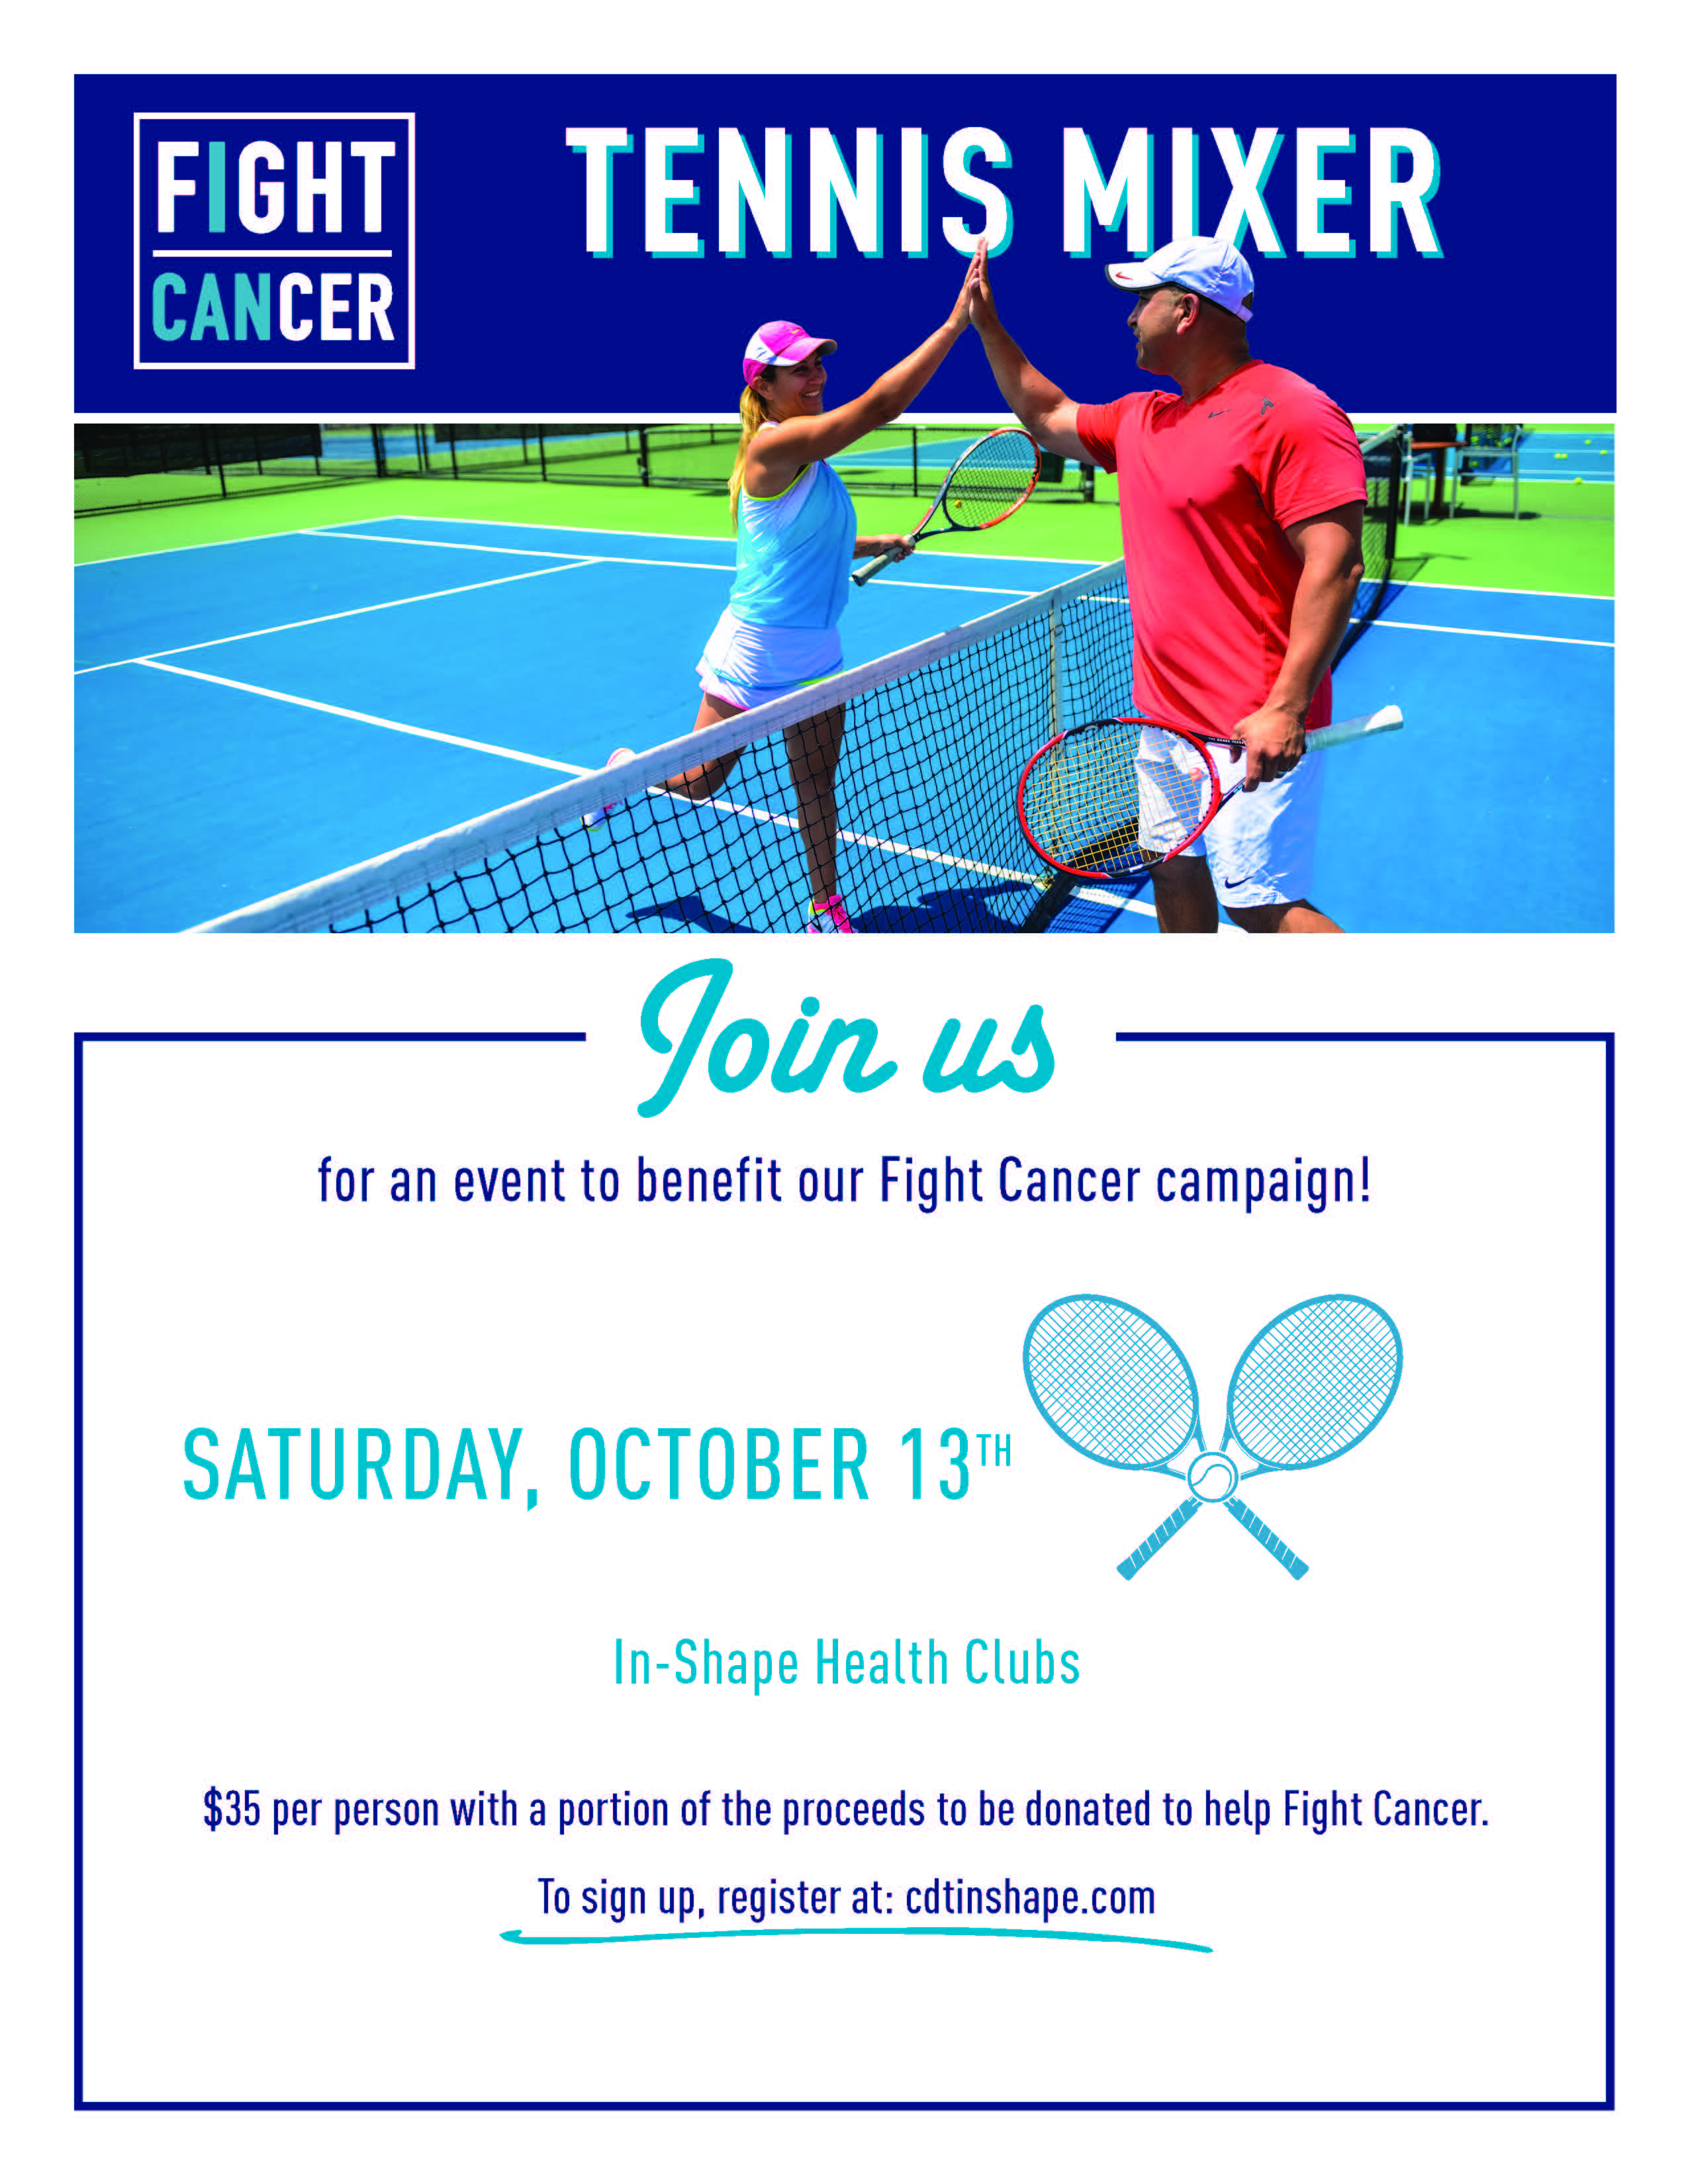 Fight Cancer Mixer